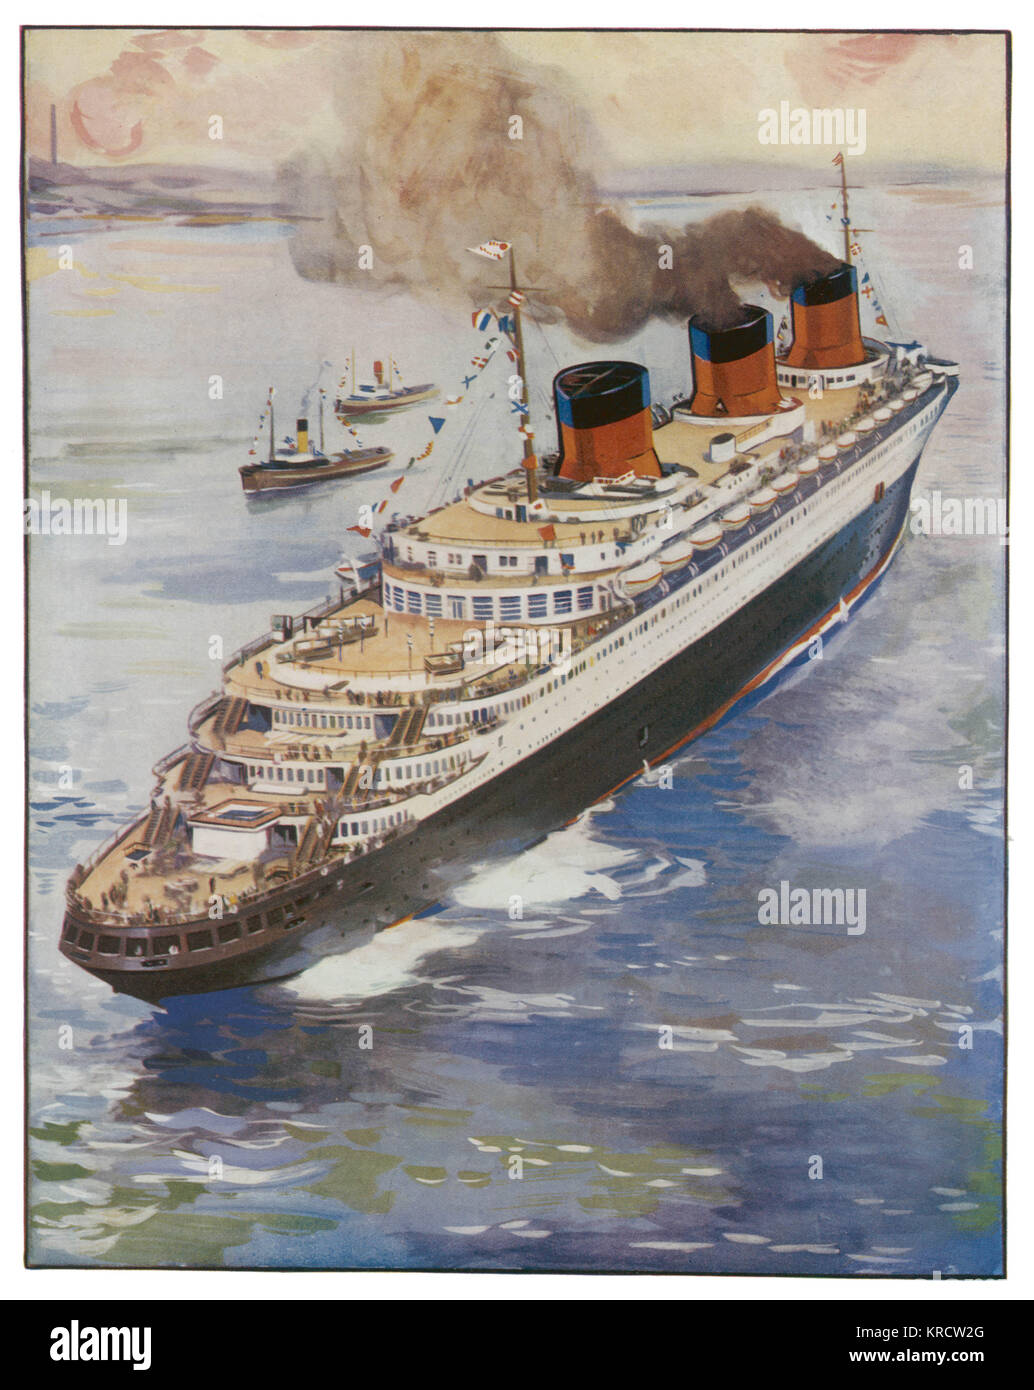 The 79,000 ton Trans-Atlantic French steam ship, Normandie. Date: 1935 - Stock Image